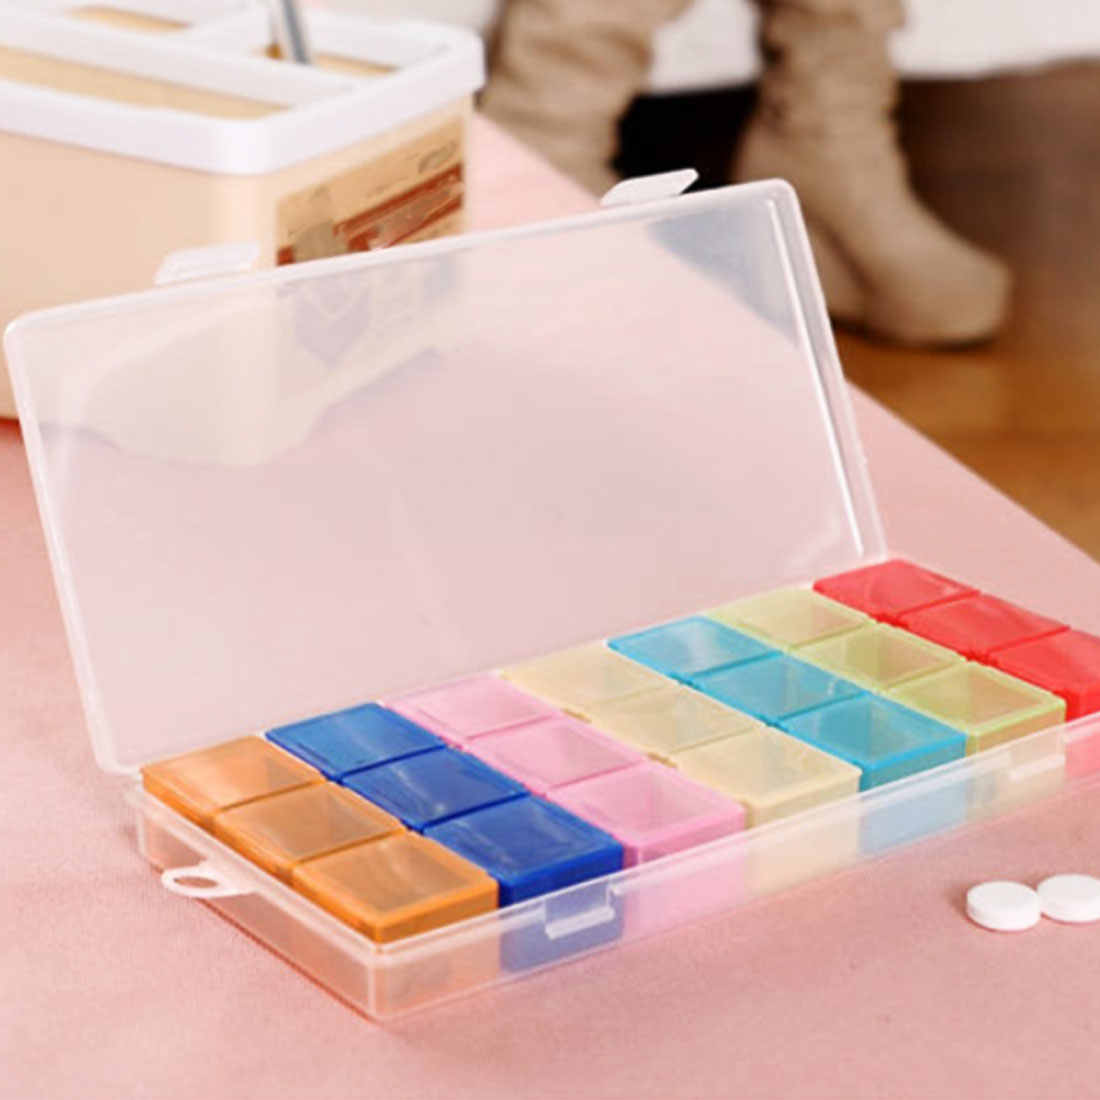 21 Compartment 7 Days Pill Case Medicine Storage Tablet Pill Box With Clip Lids Medicine Organizer Pill Case Splitters Storage